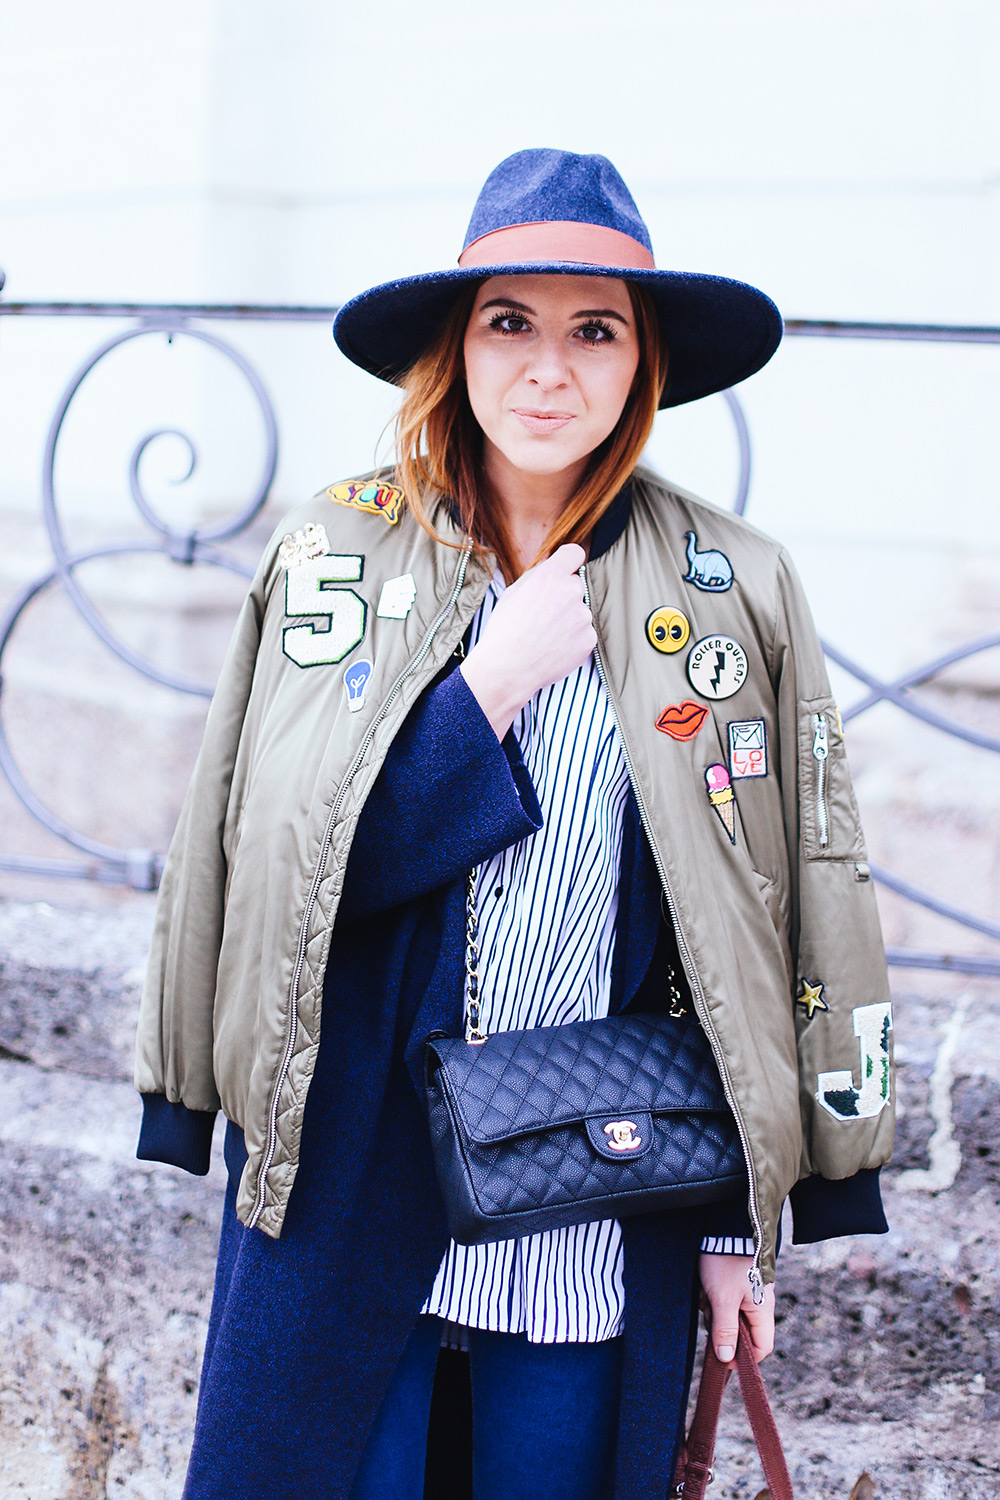 Bomberjacke kombinieren, Bomberjacke mit Patches, layering outfit, lagenlook, streetstyle innsbruck, frenchie, chanel flap bag, whoismocca.com, fashionblogger